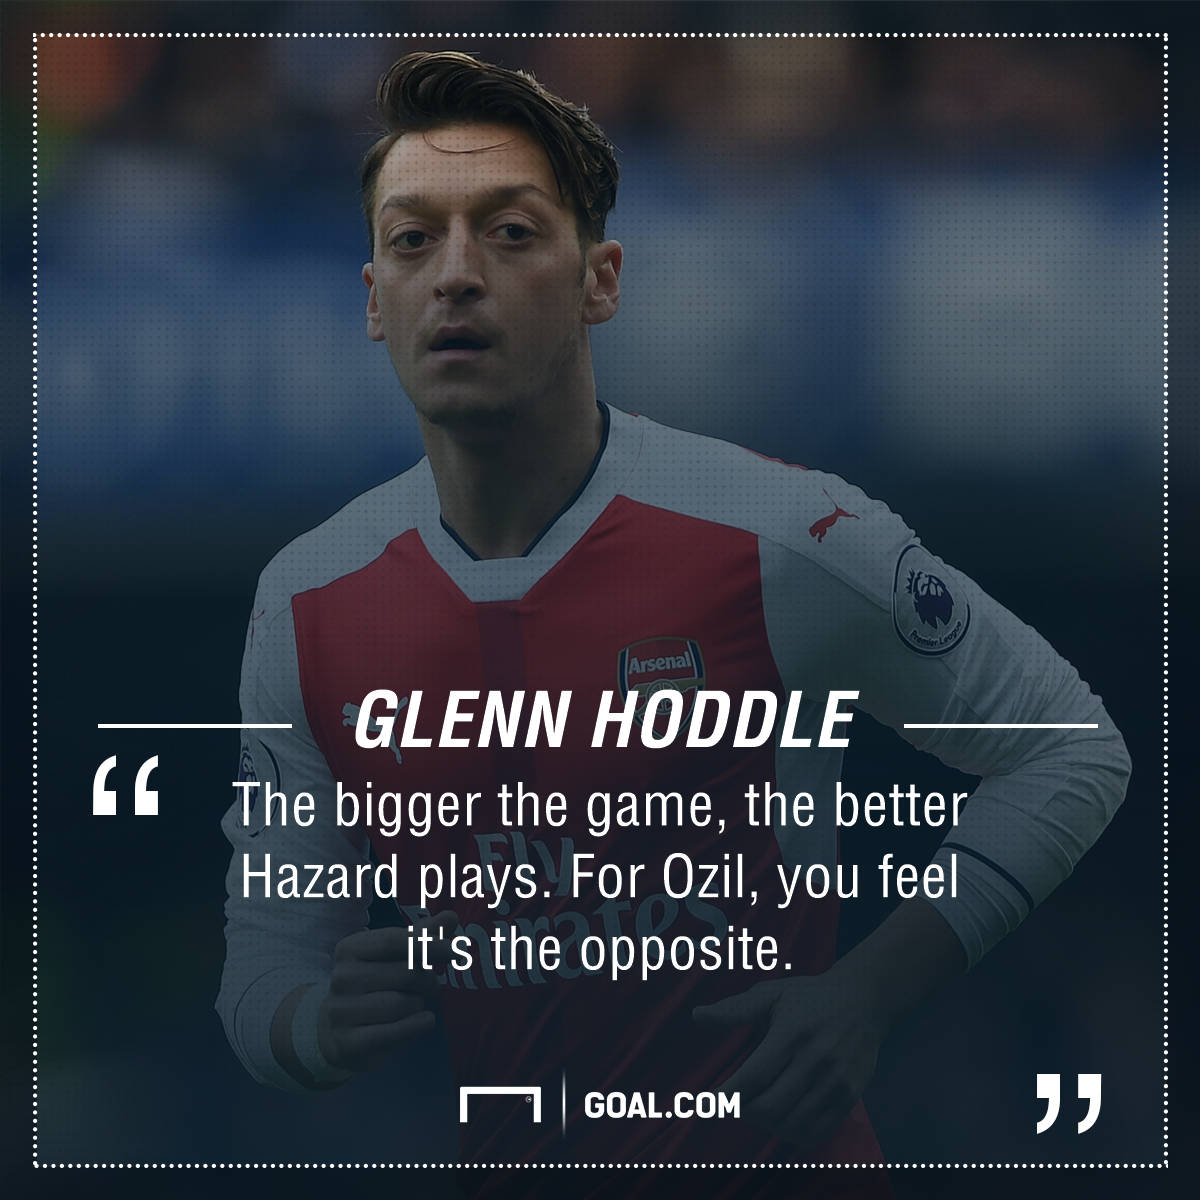 Glenn Hoddle Hazard Ozil PS